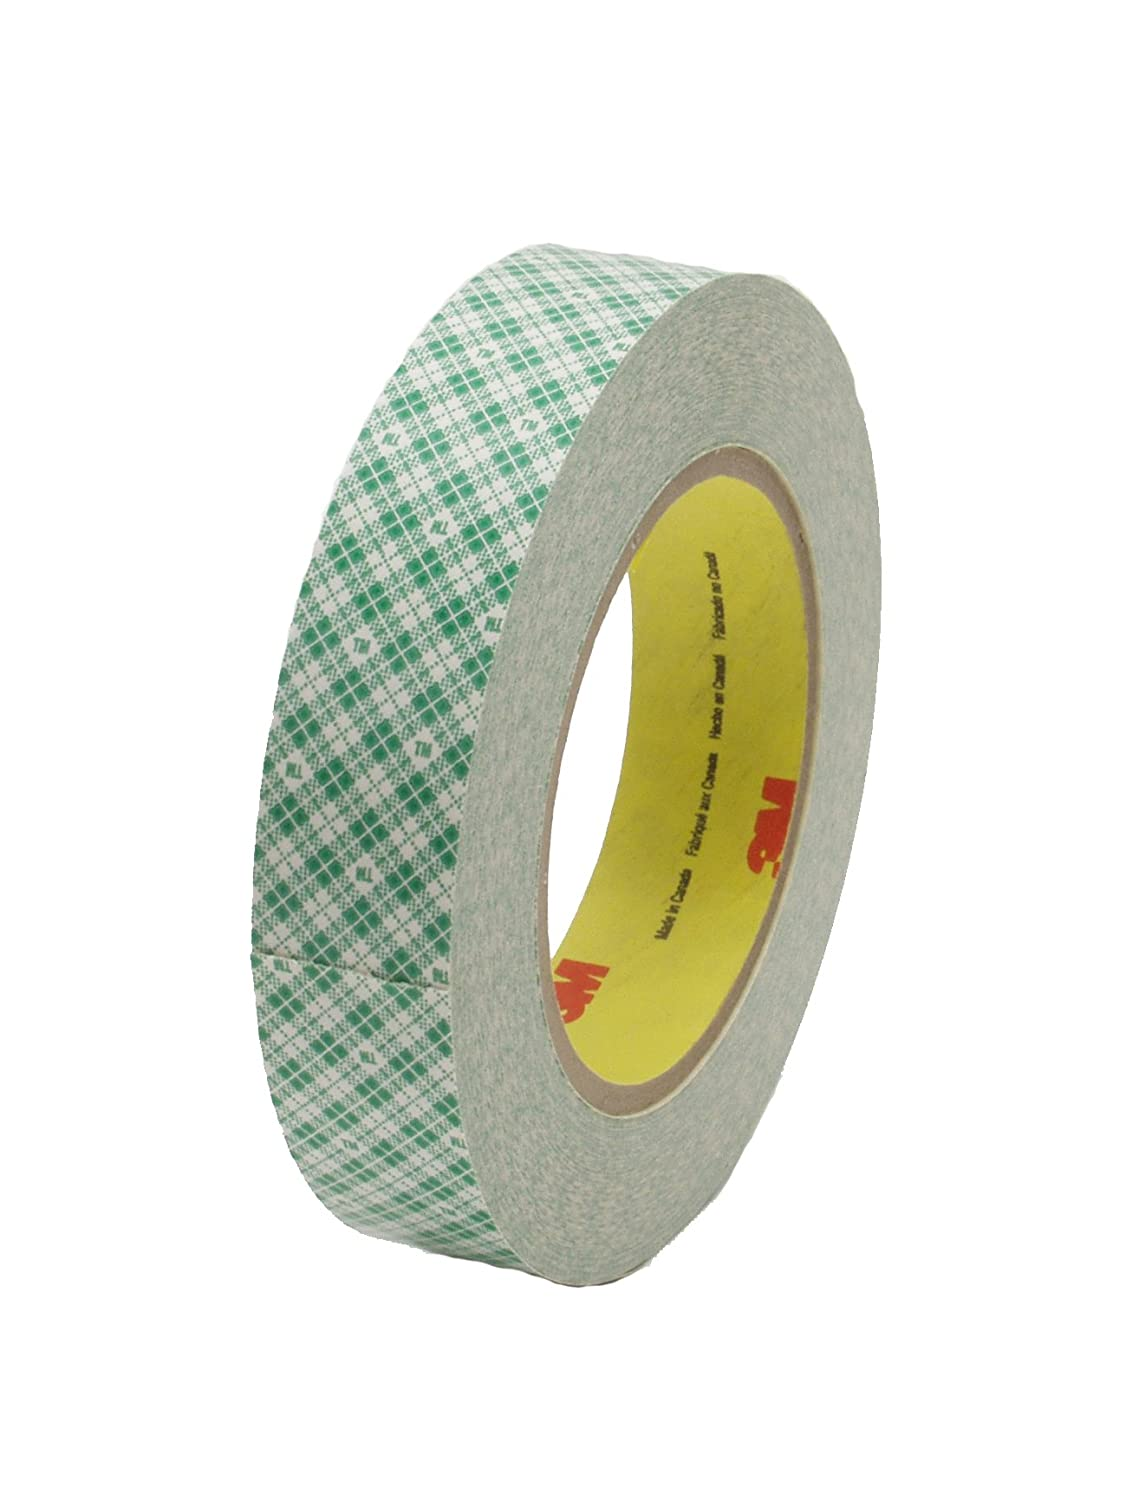 Adhesives, Sealants & Tapes Business & Industrial SCOTCH 3M Double Coated Paper Tape 410M 2 width x 36 yd length 5.0 mil 3 Core